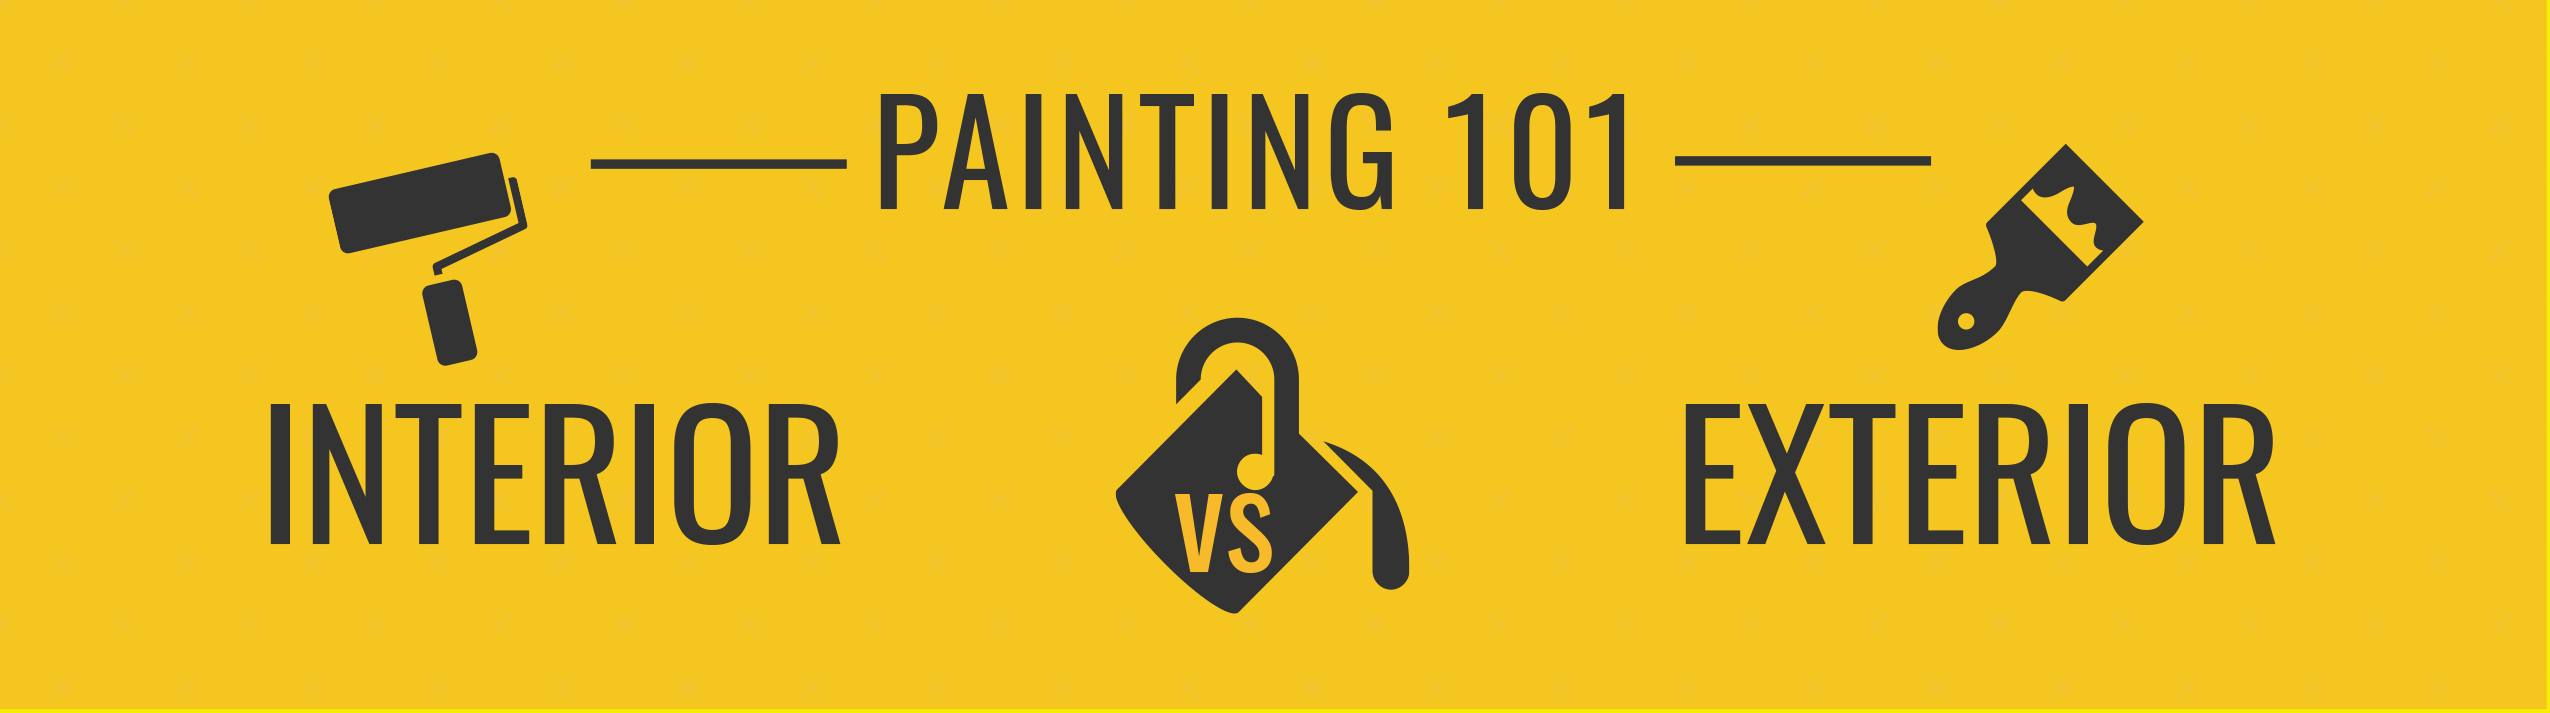 Painting 101: Interior vs. Exterior